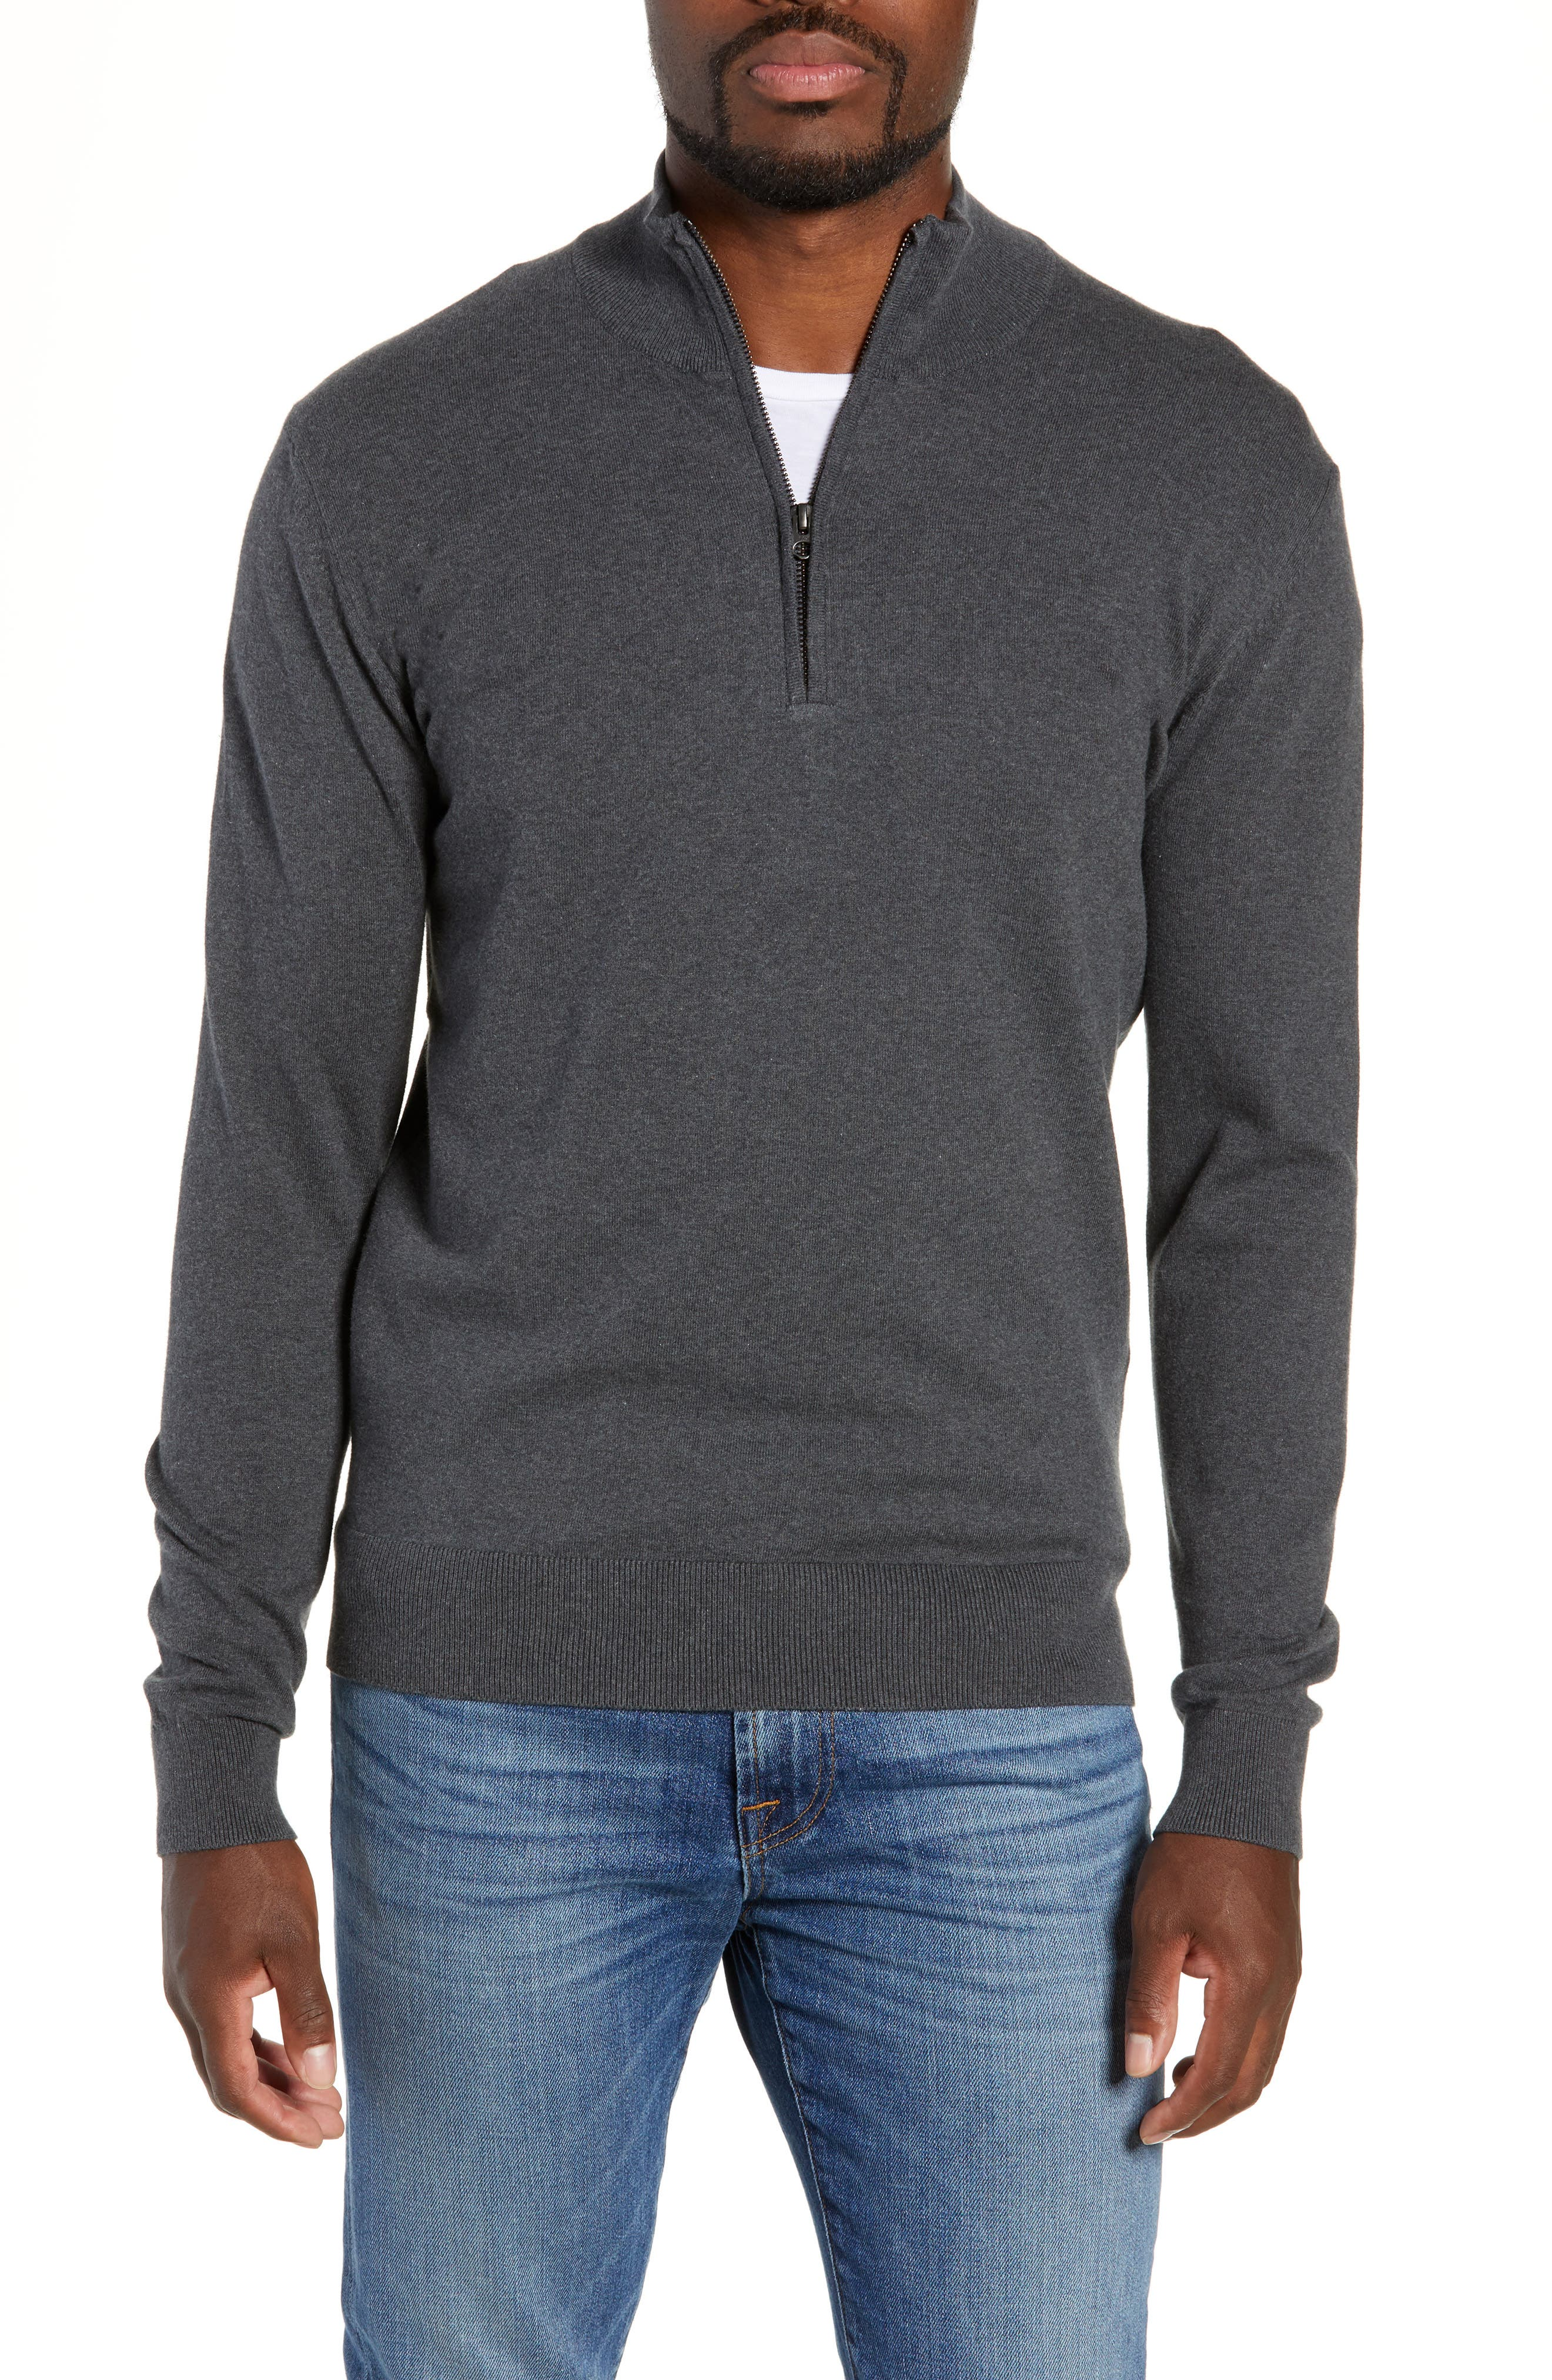 French Connection Stretch Cotton Quarter Zip Sweater, Grey